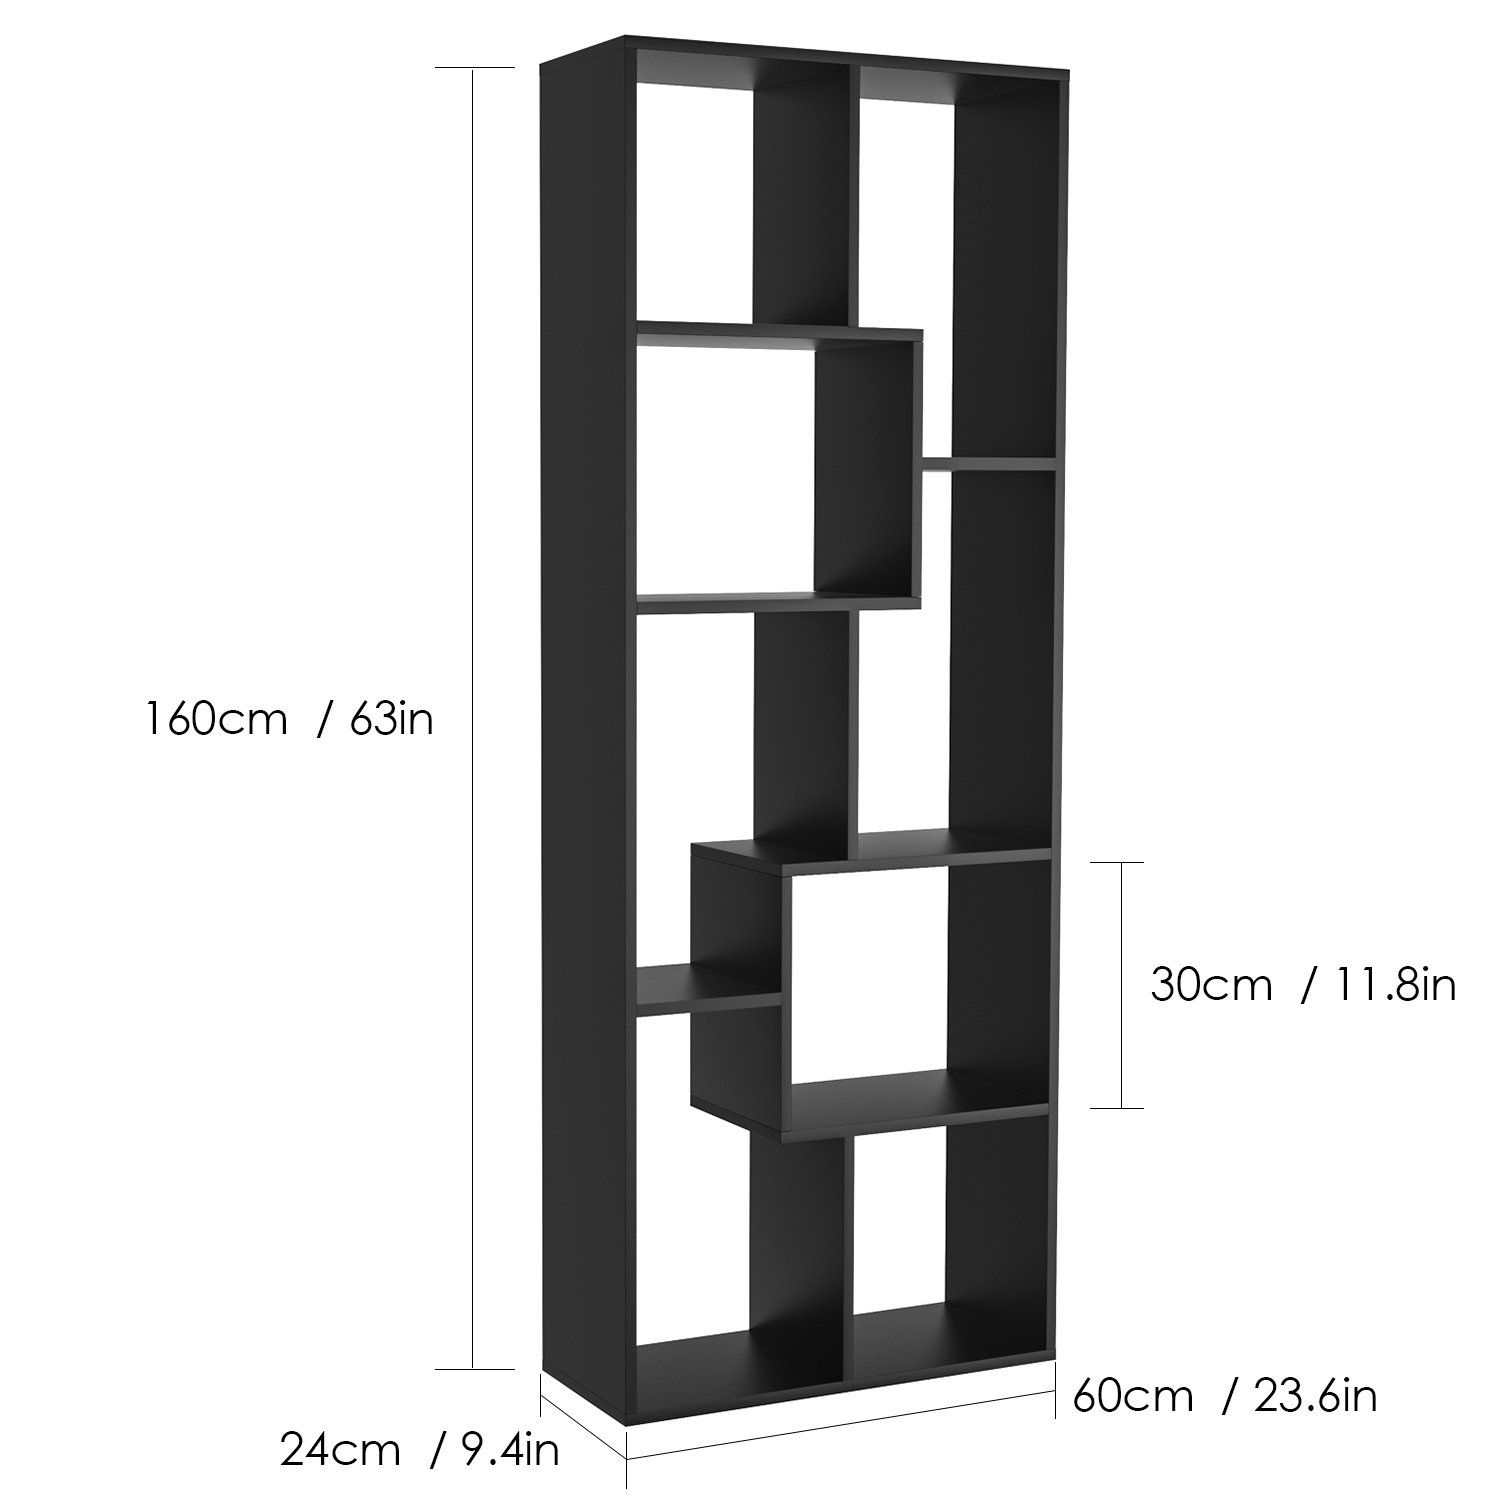 Homfa Bookshelf Freestanding 8 Cube Decorative Diy Display Storage Bookcase Corner Book Rack For Better Homes And Ga Bookshelves Bookcase Decor Display Storage